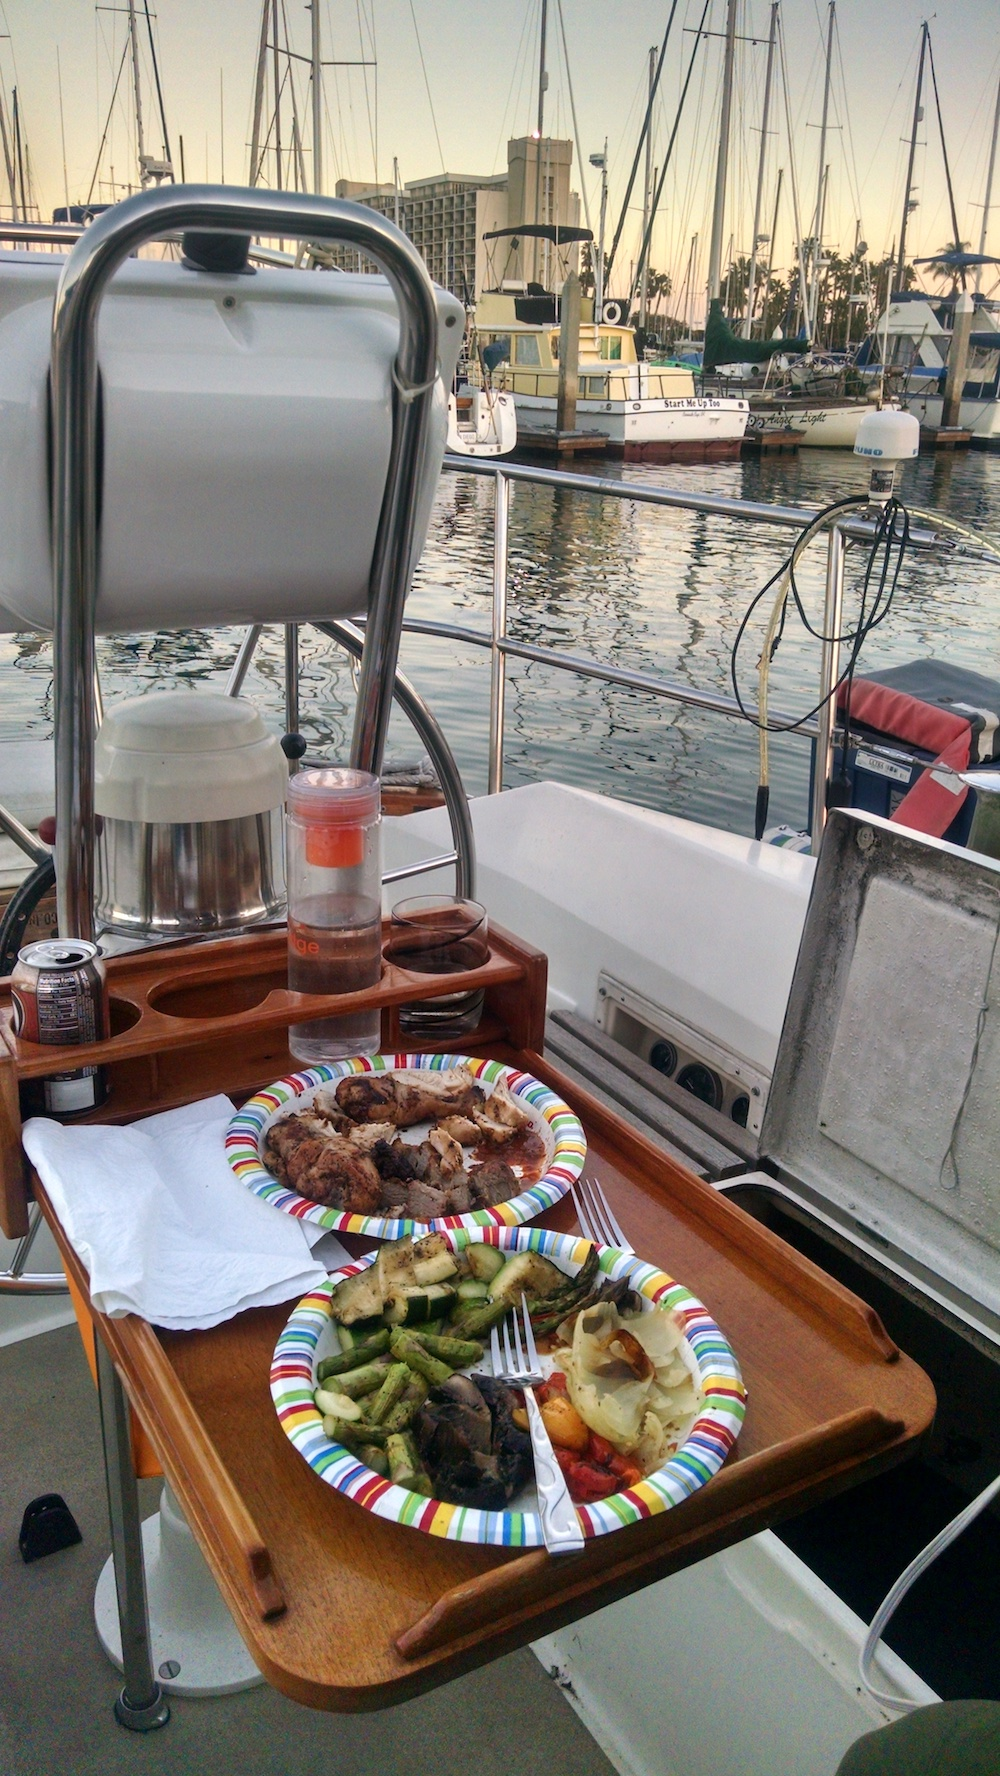 This picture was taken on February 21, 2016 before I had fully moved onto the boat and brought over actual dinner plates. You have to work with what you have and on this night it was paper plates.